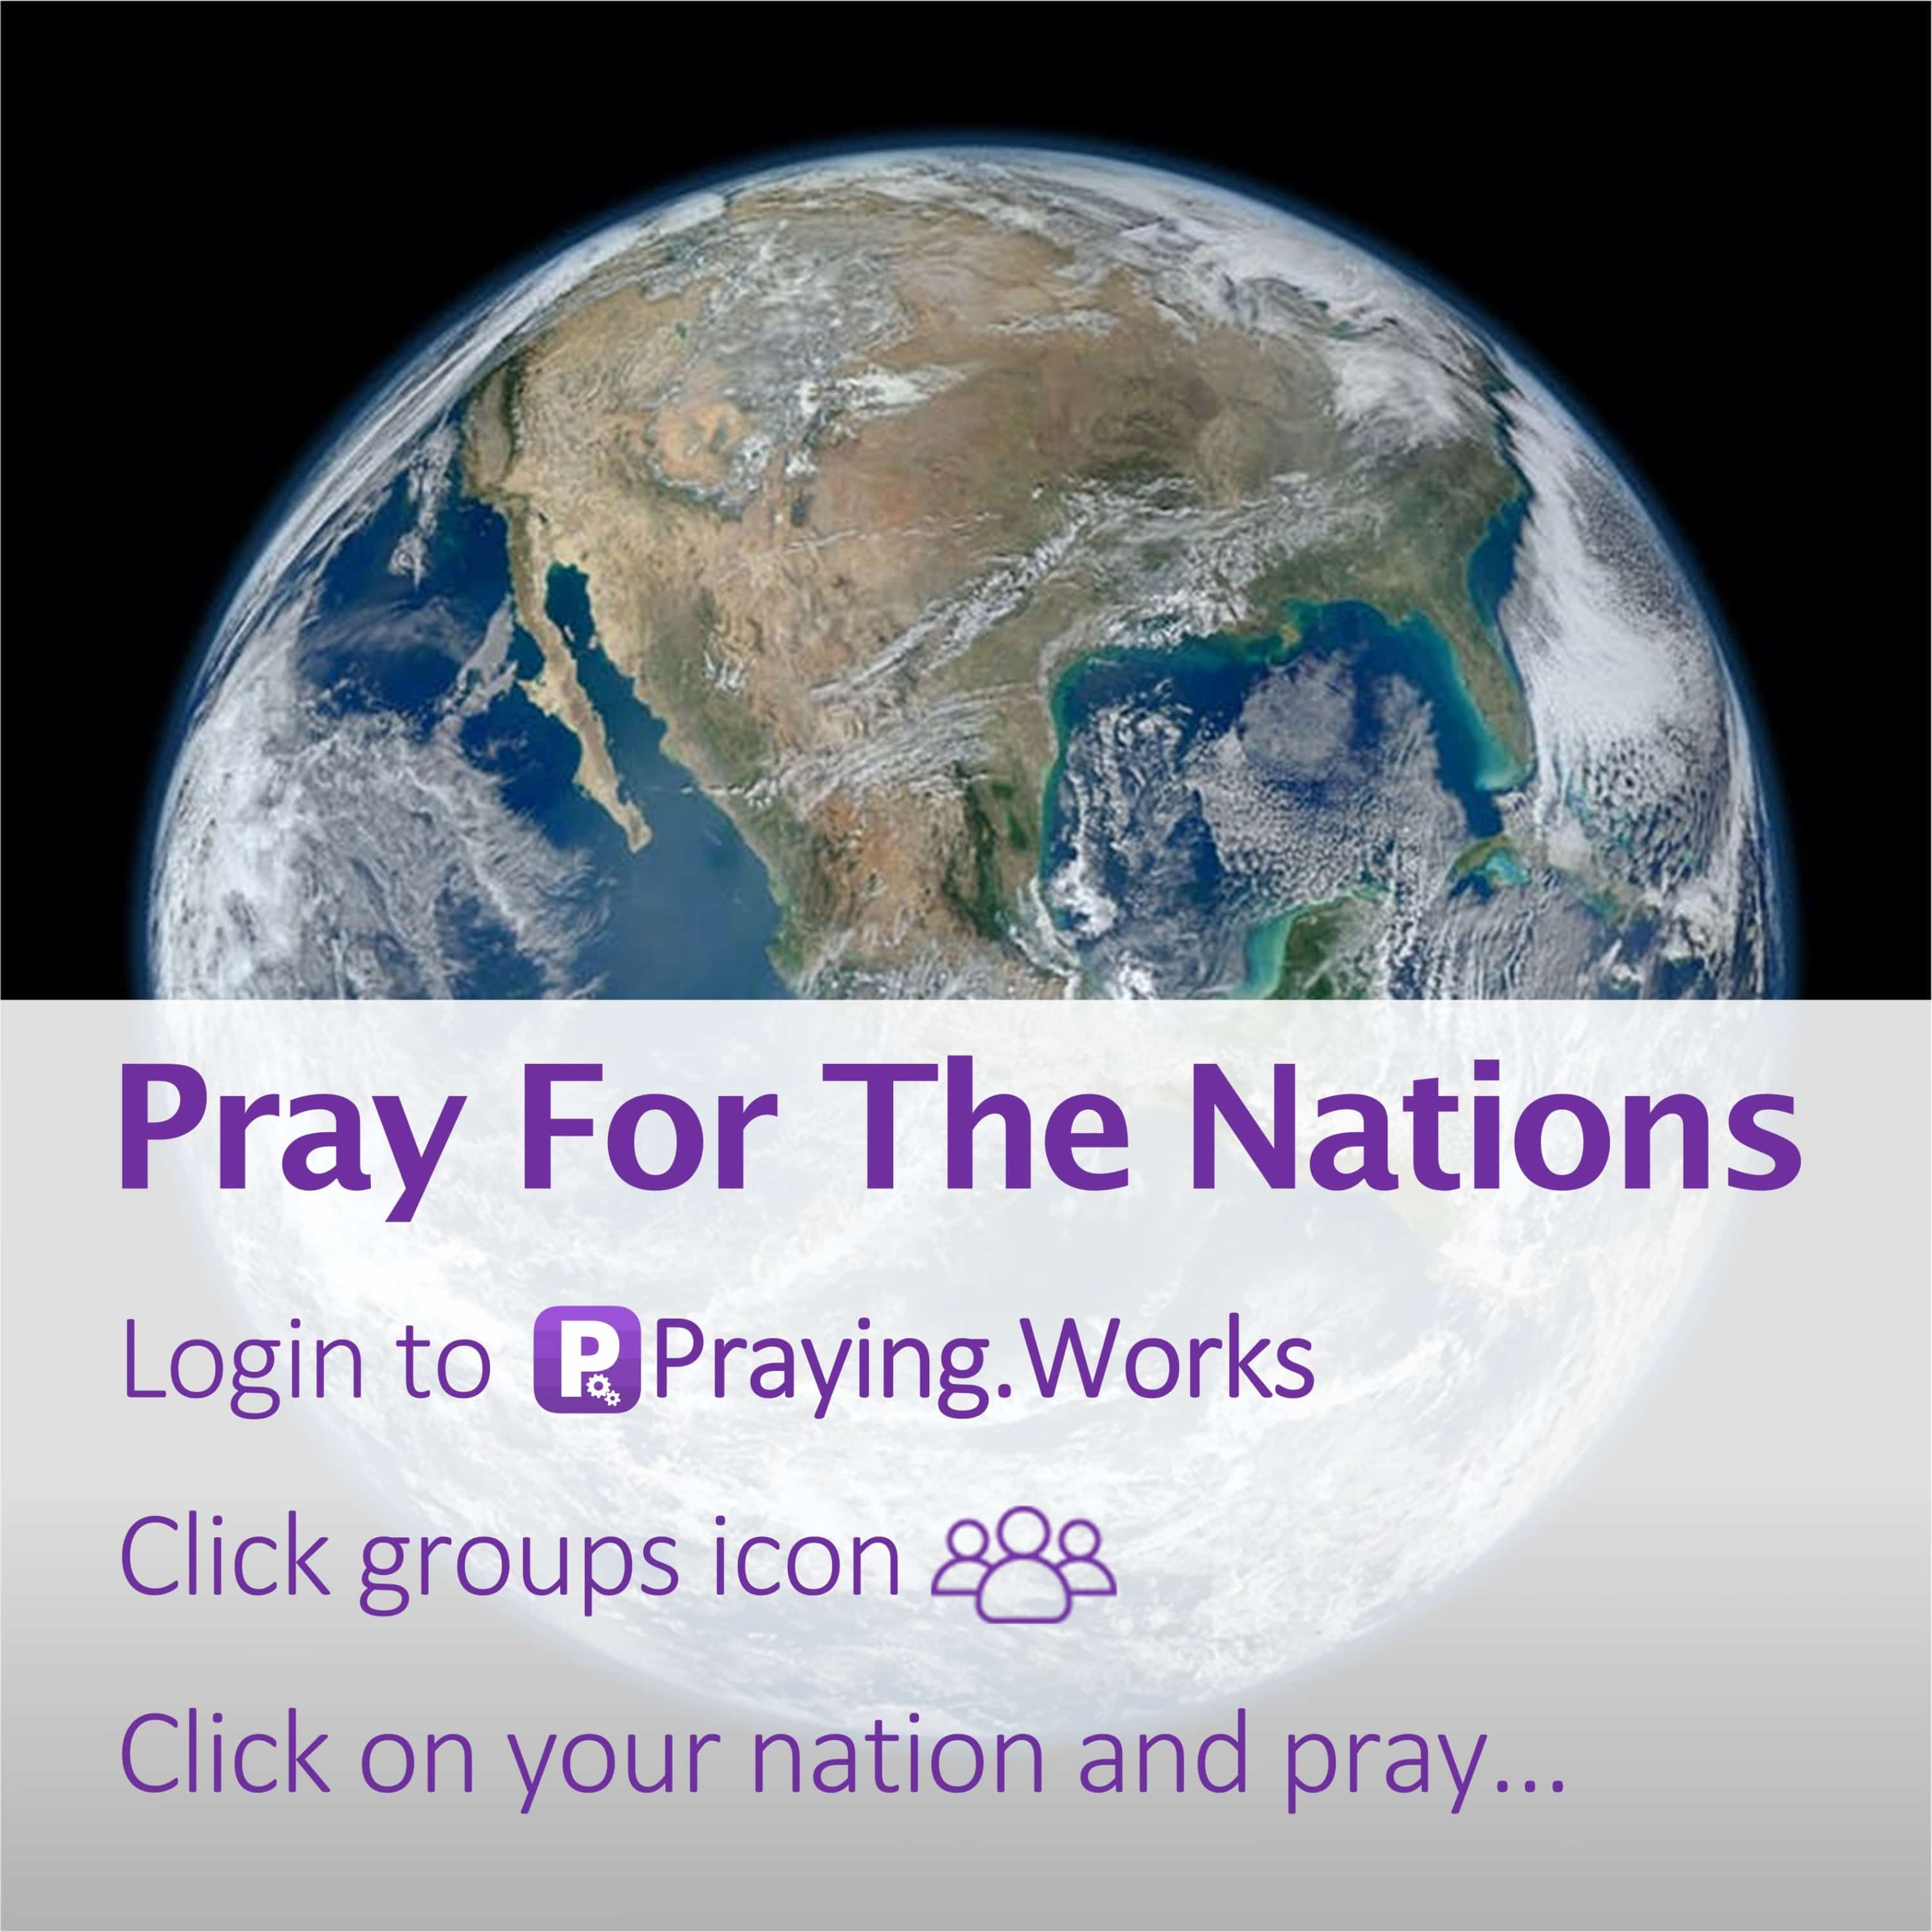 Pray for the Nations 5/7